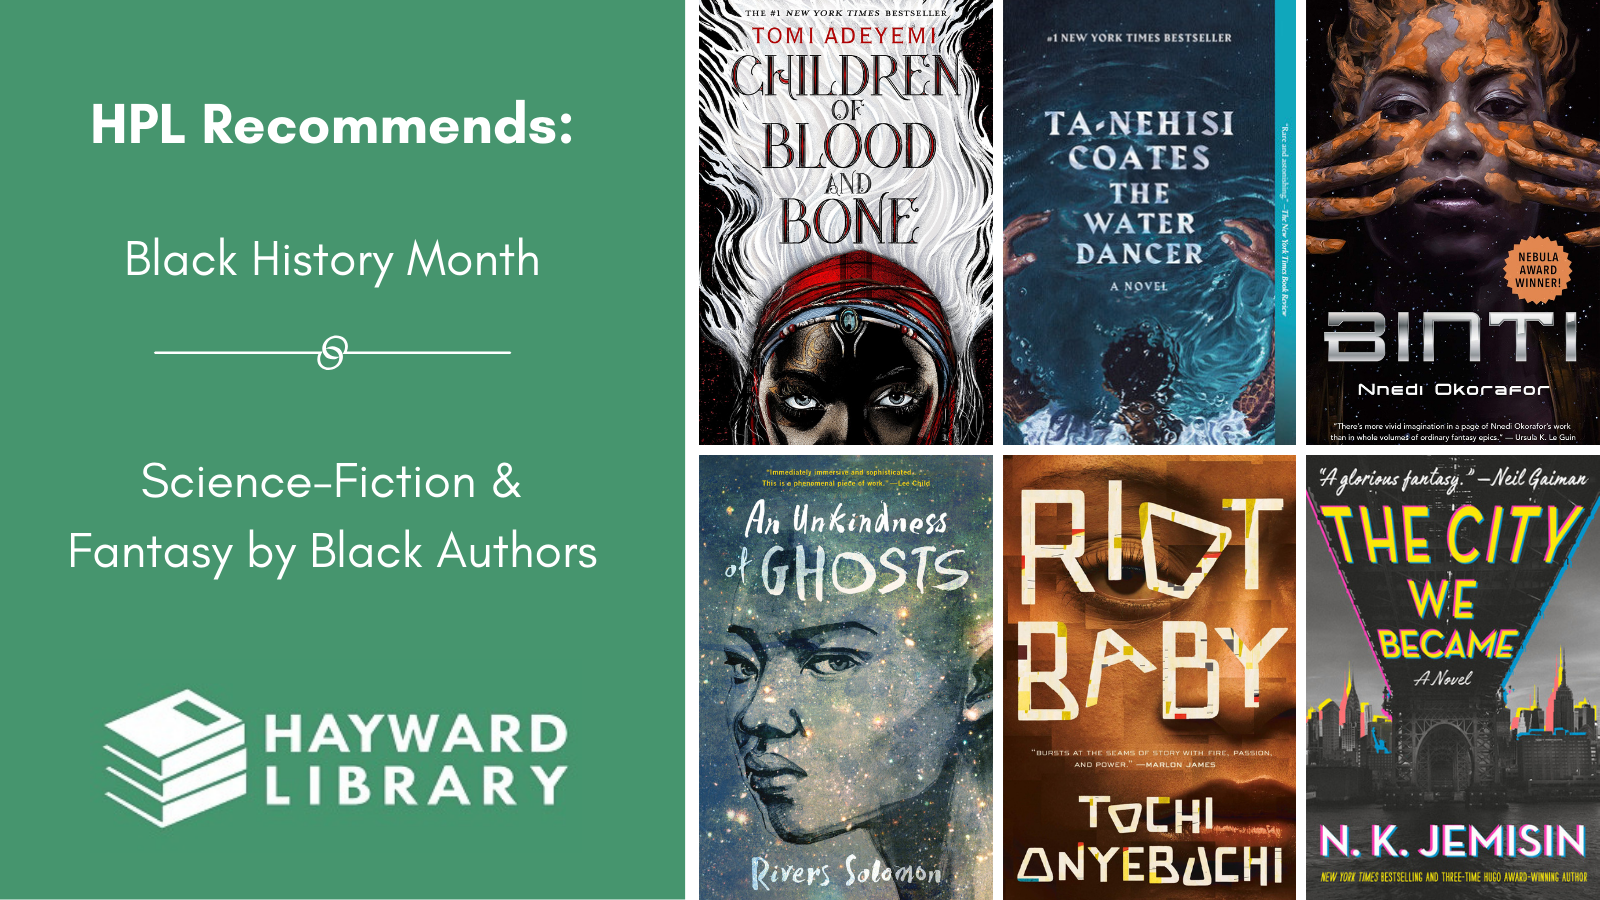 Collage of book covers with a green block on left side that says HPL Recommends, Black History Month, Science-Fiction & Fantasy by Black Authors in white text, with Hayward Library logo below it.